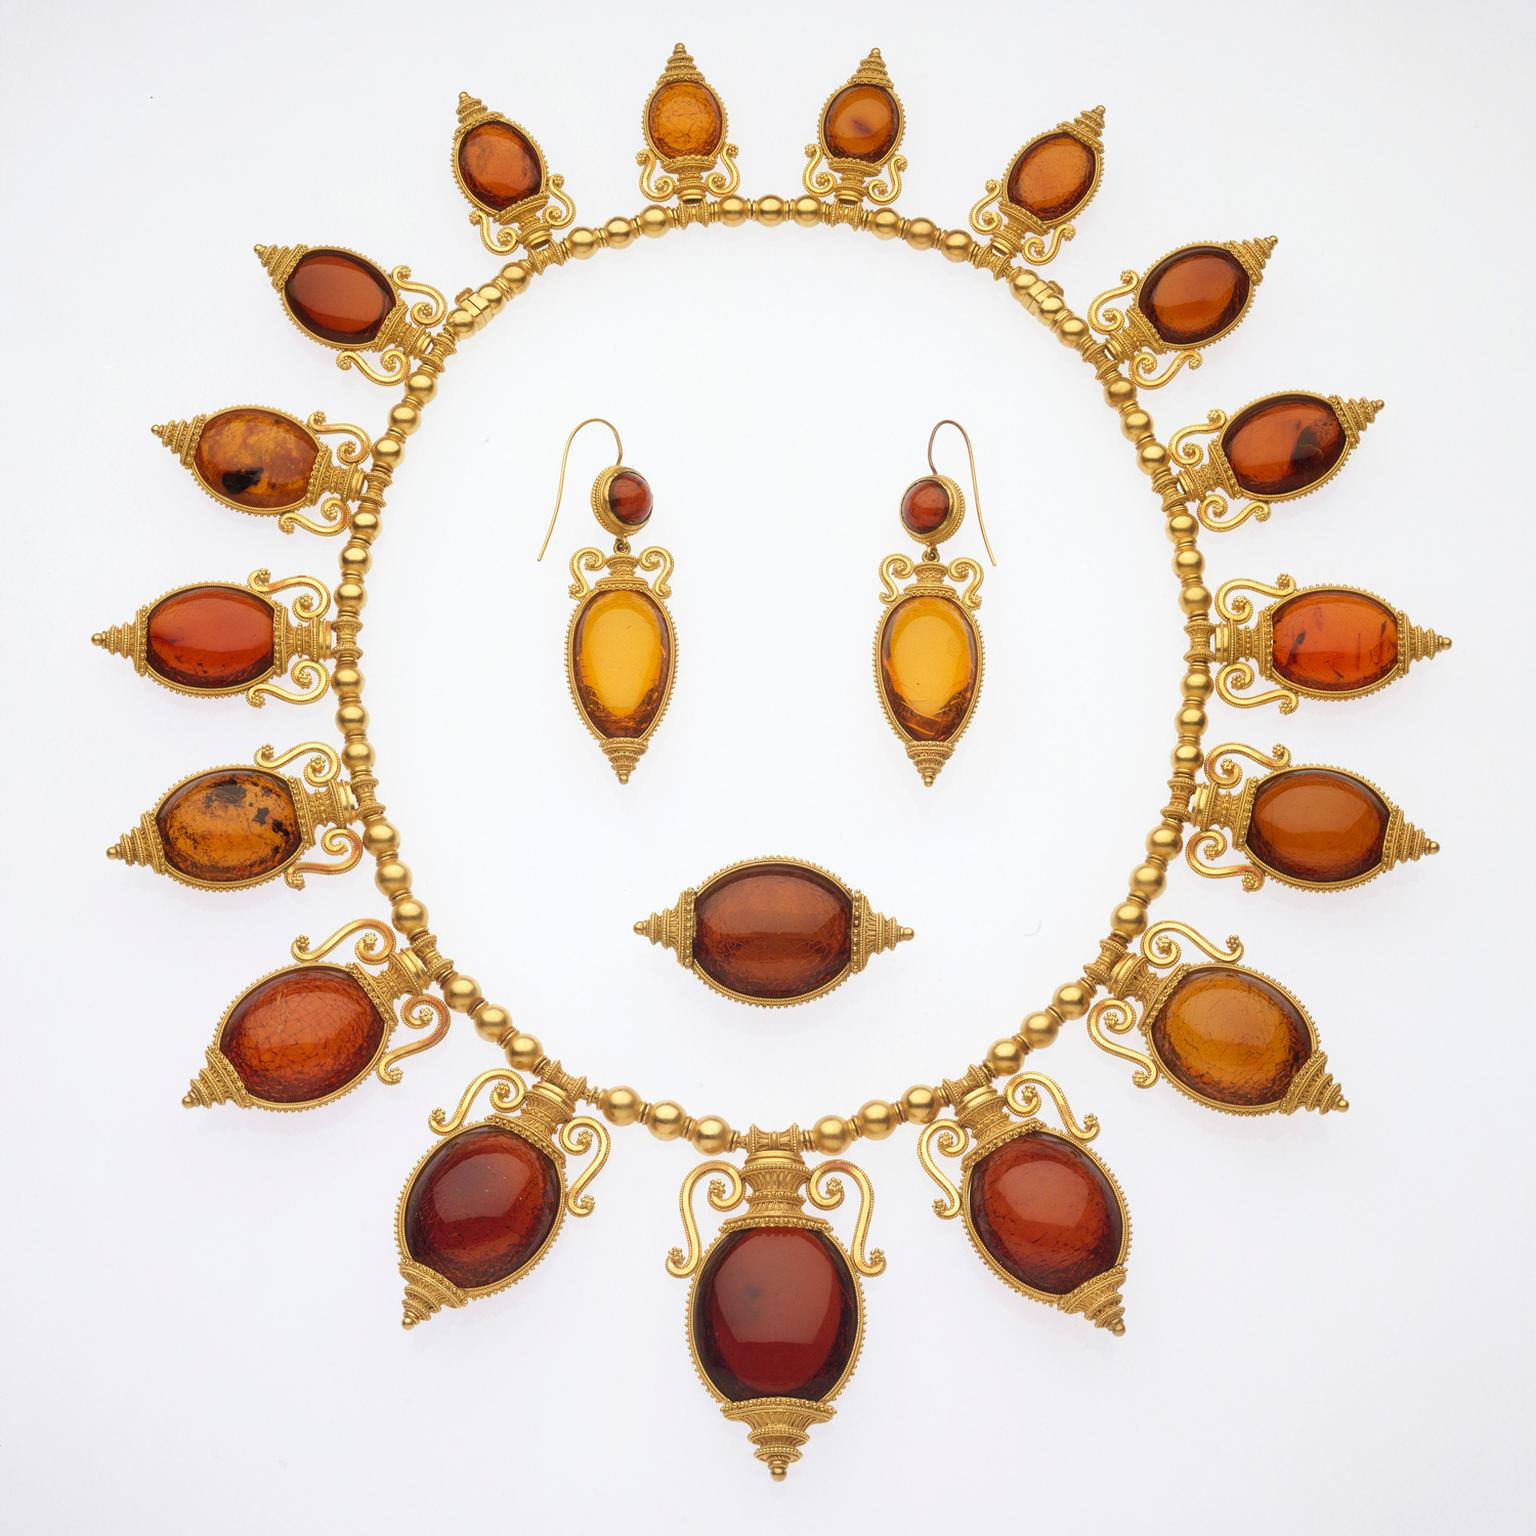 Castellani necklace, brooch and earrings in the archaeological revival style, circa 1880